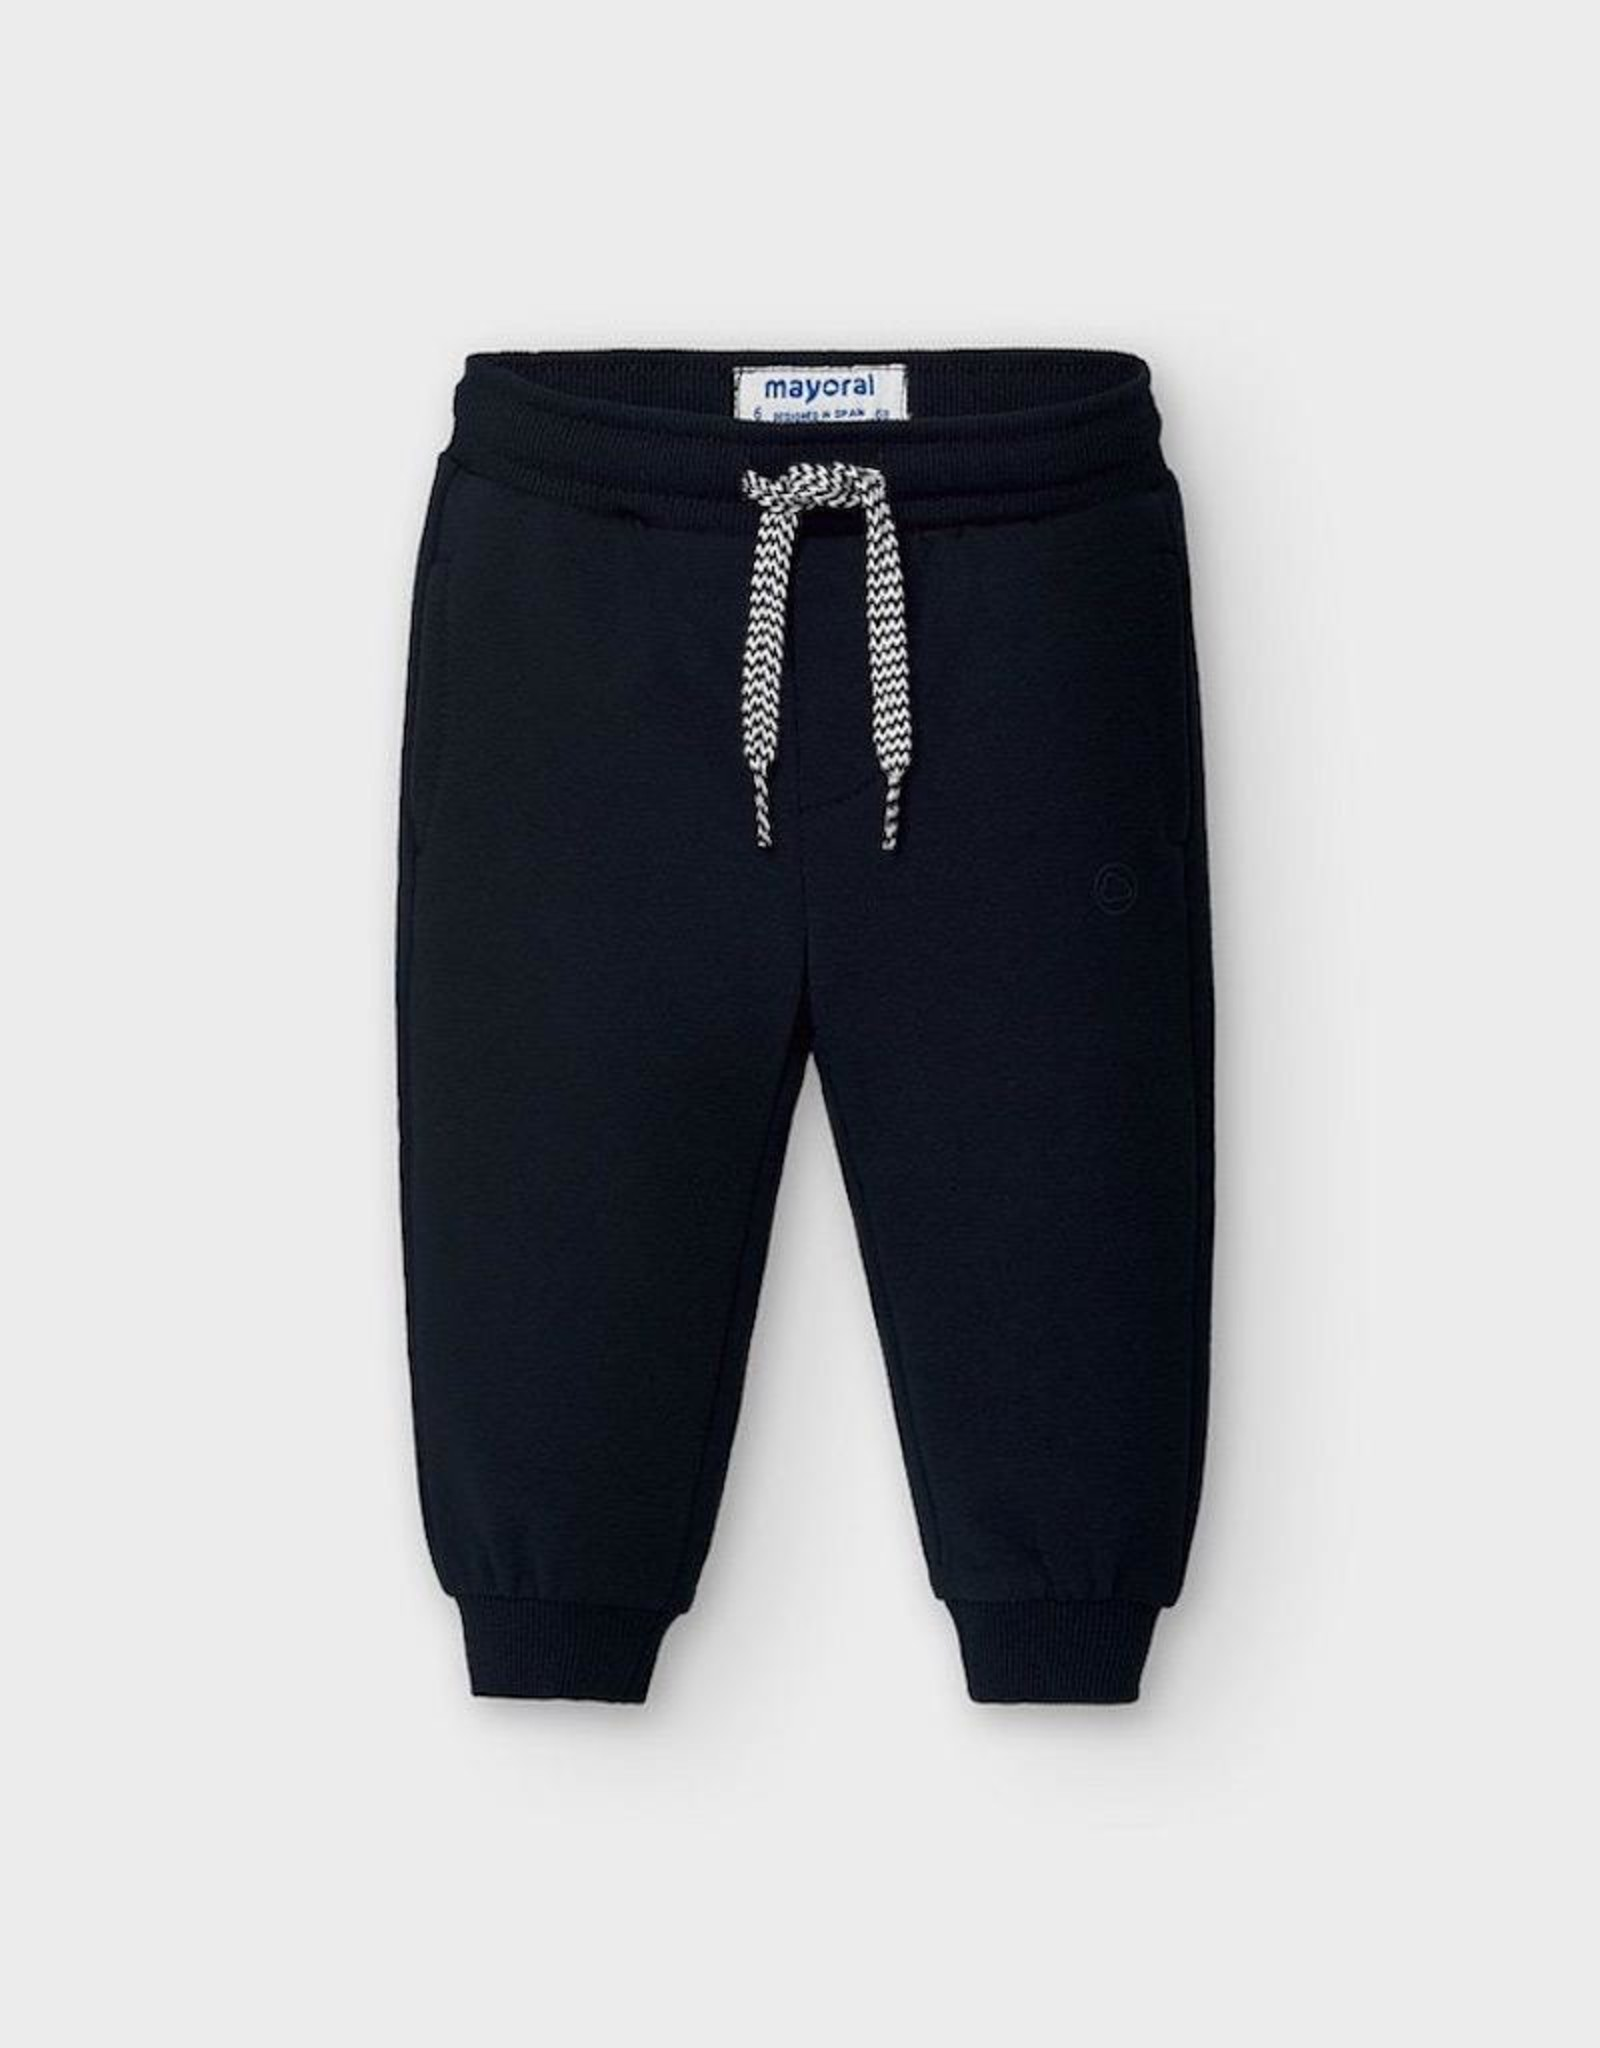 Mayoral Long Baby Pants in Navy Blue